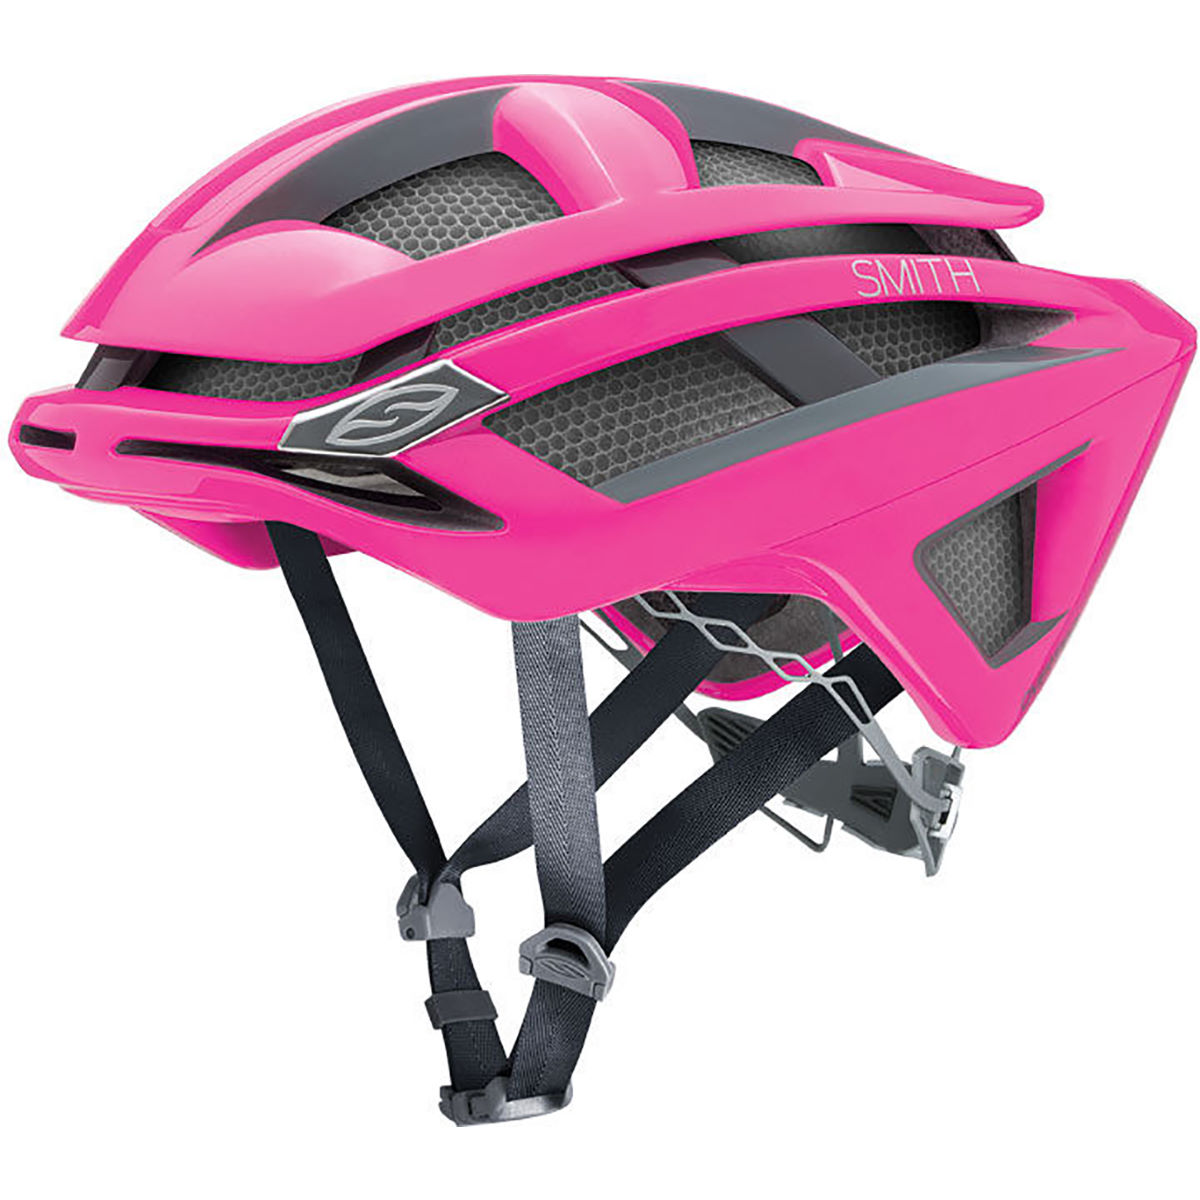 Casque Femme Smith Overtake (2016) - M 55-59cm Neon Pink Casques